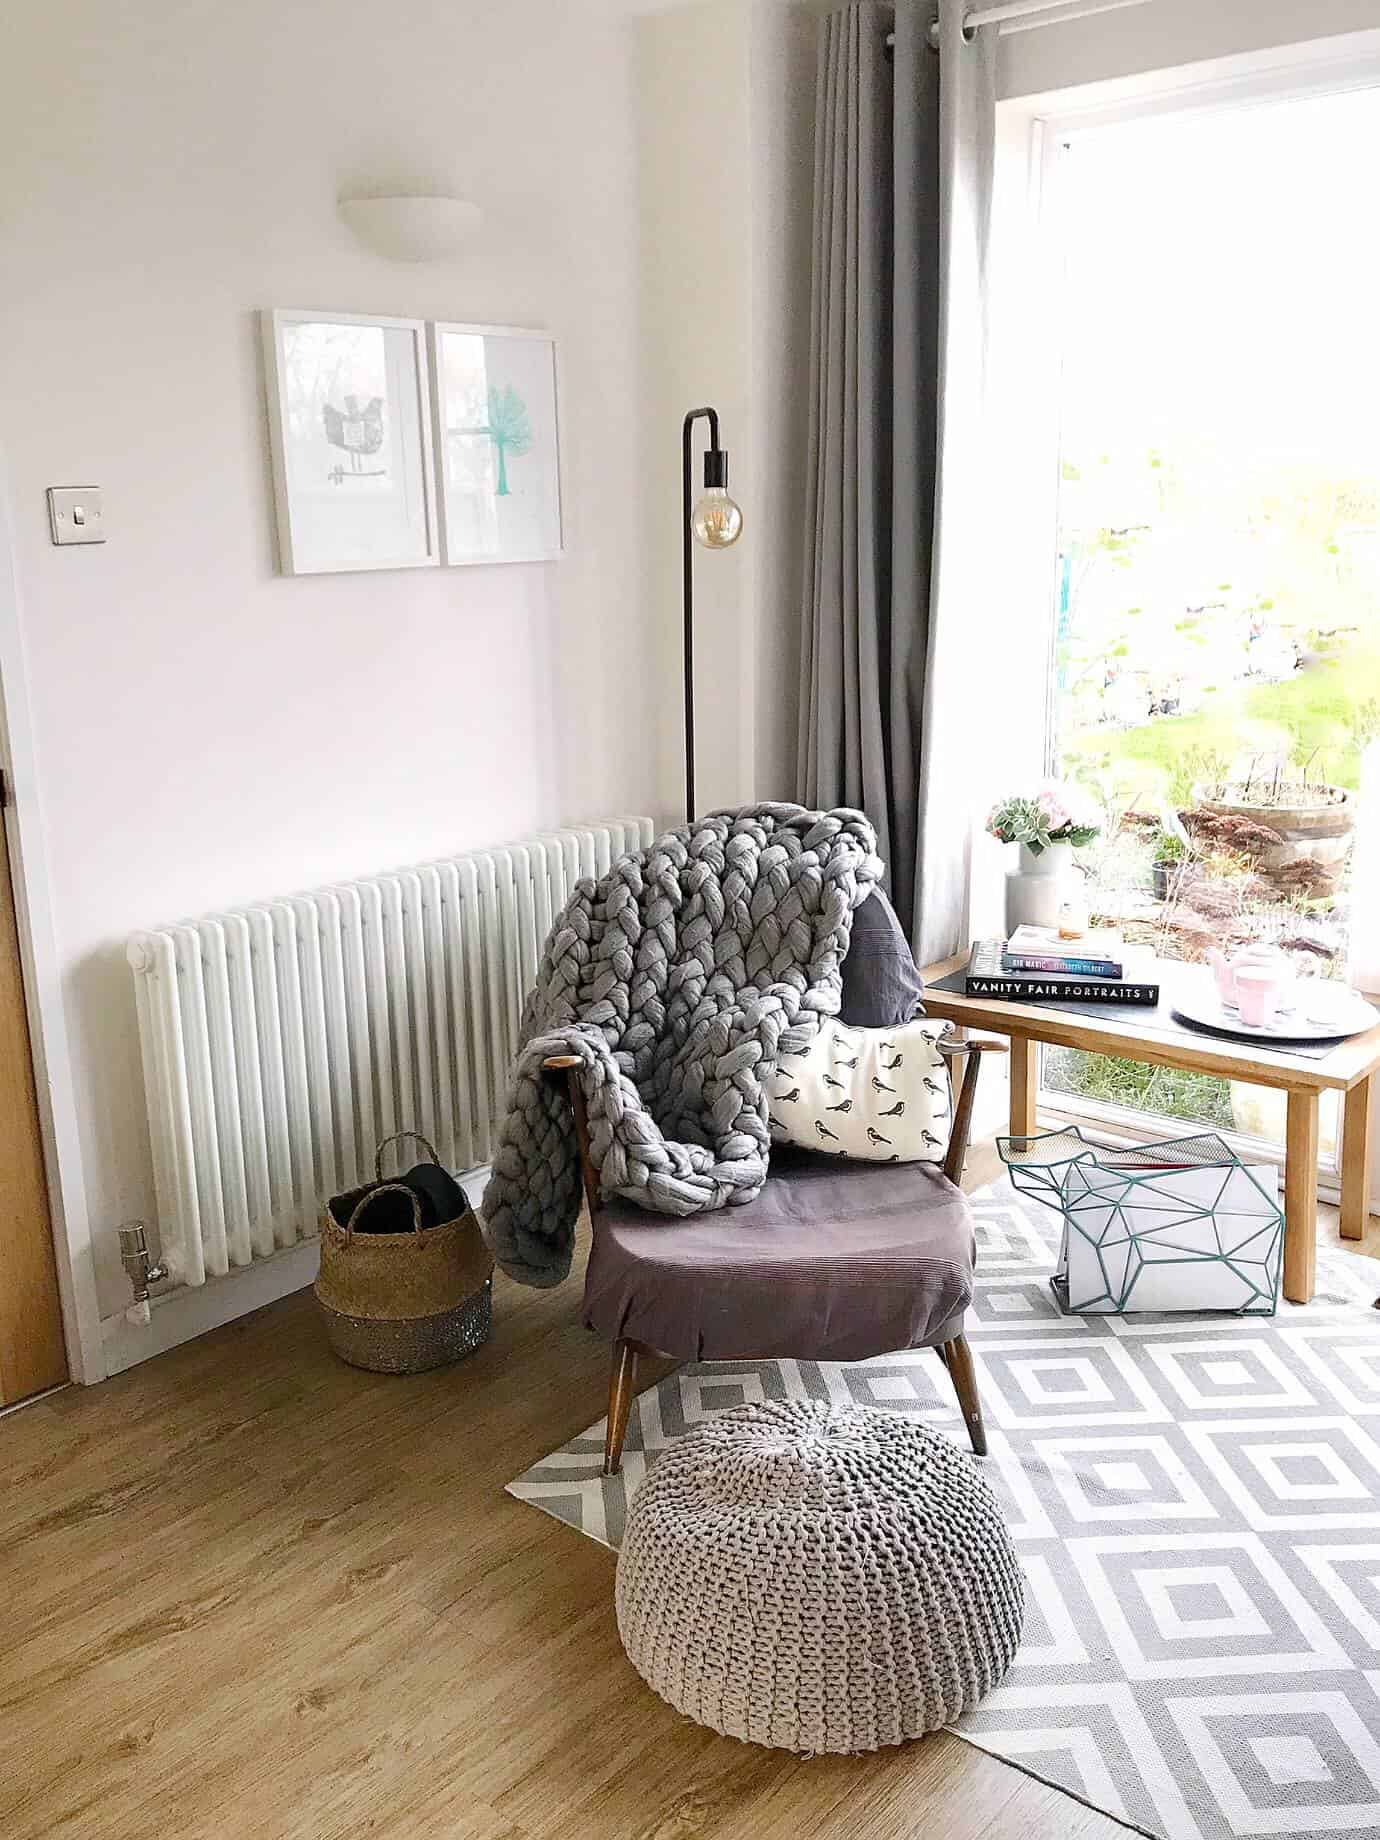 Our cosy reading nook